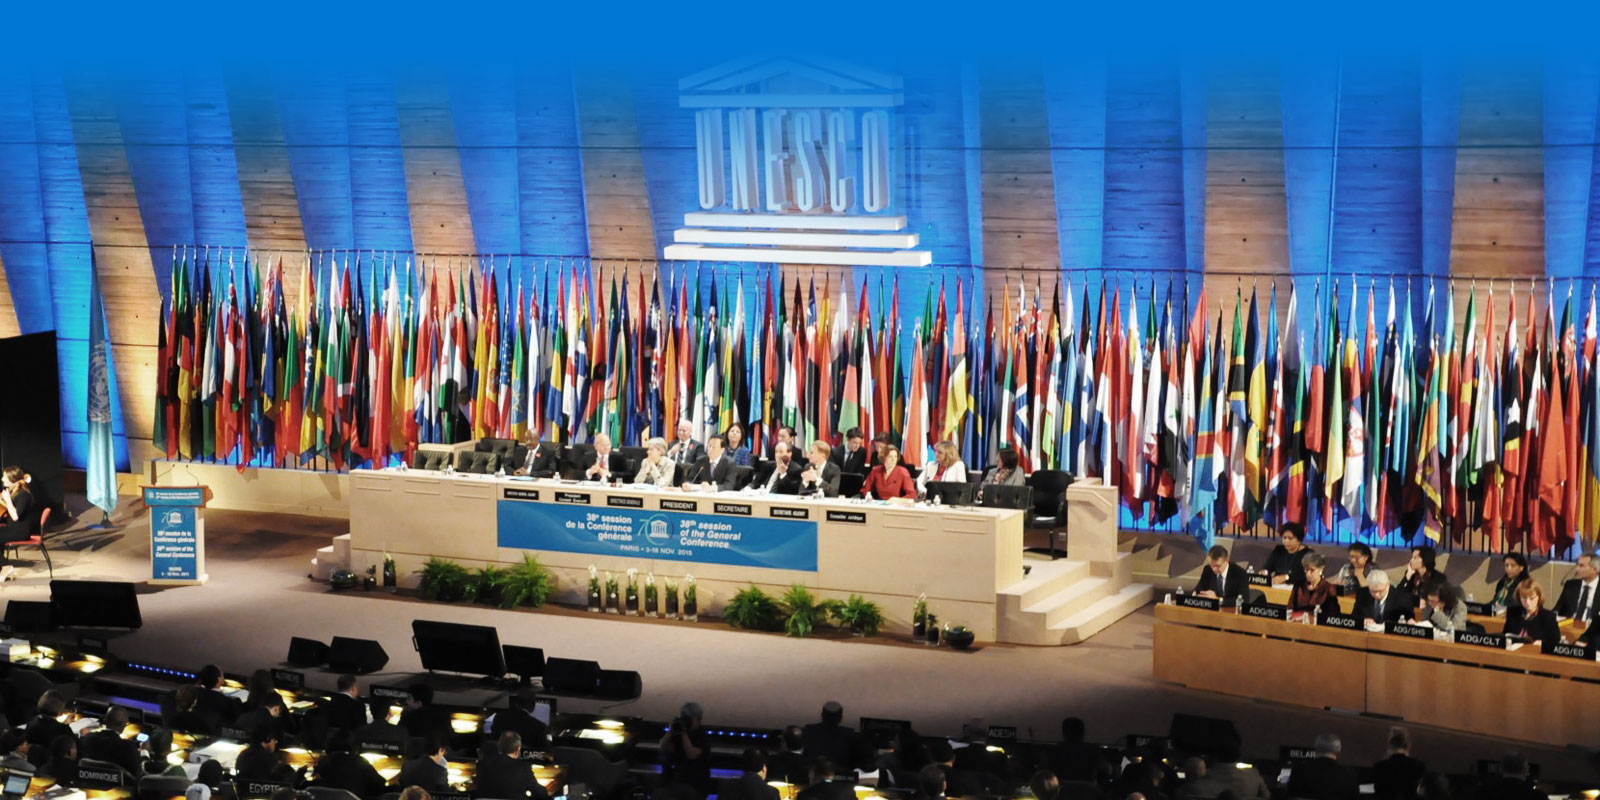 MALAYSIA ELECTED TO UNESCO'S EXECUTIVE BOARD